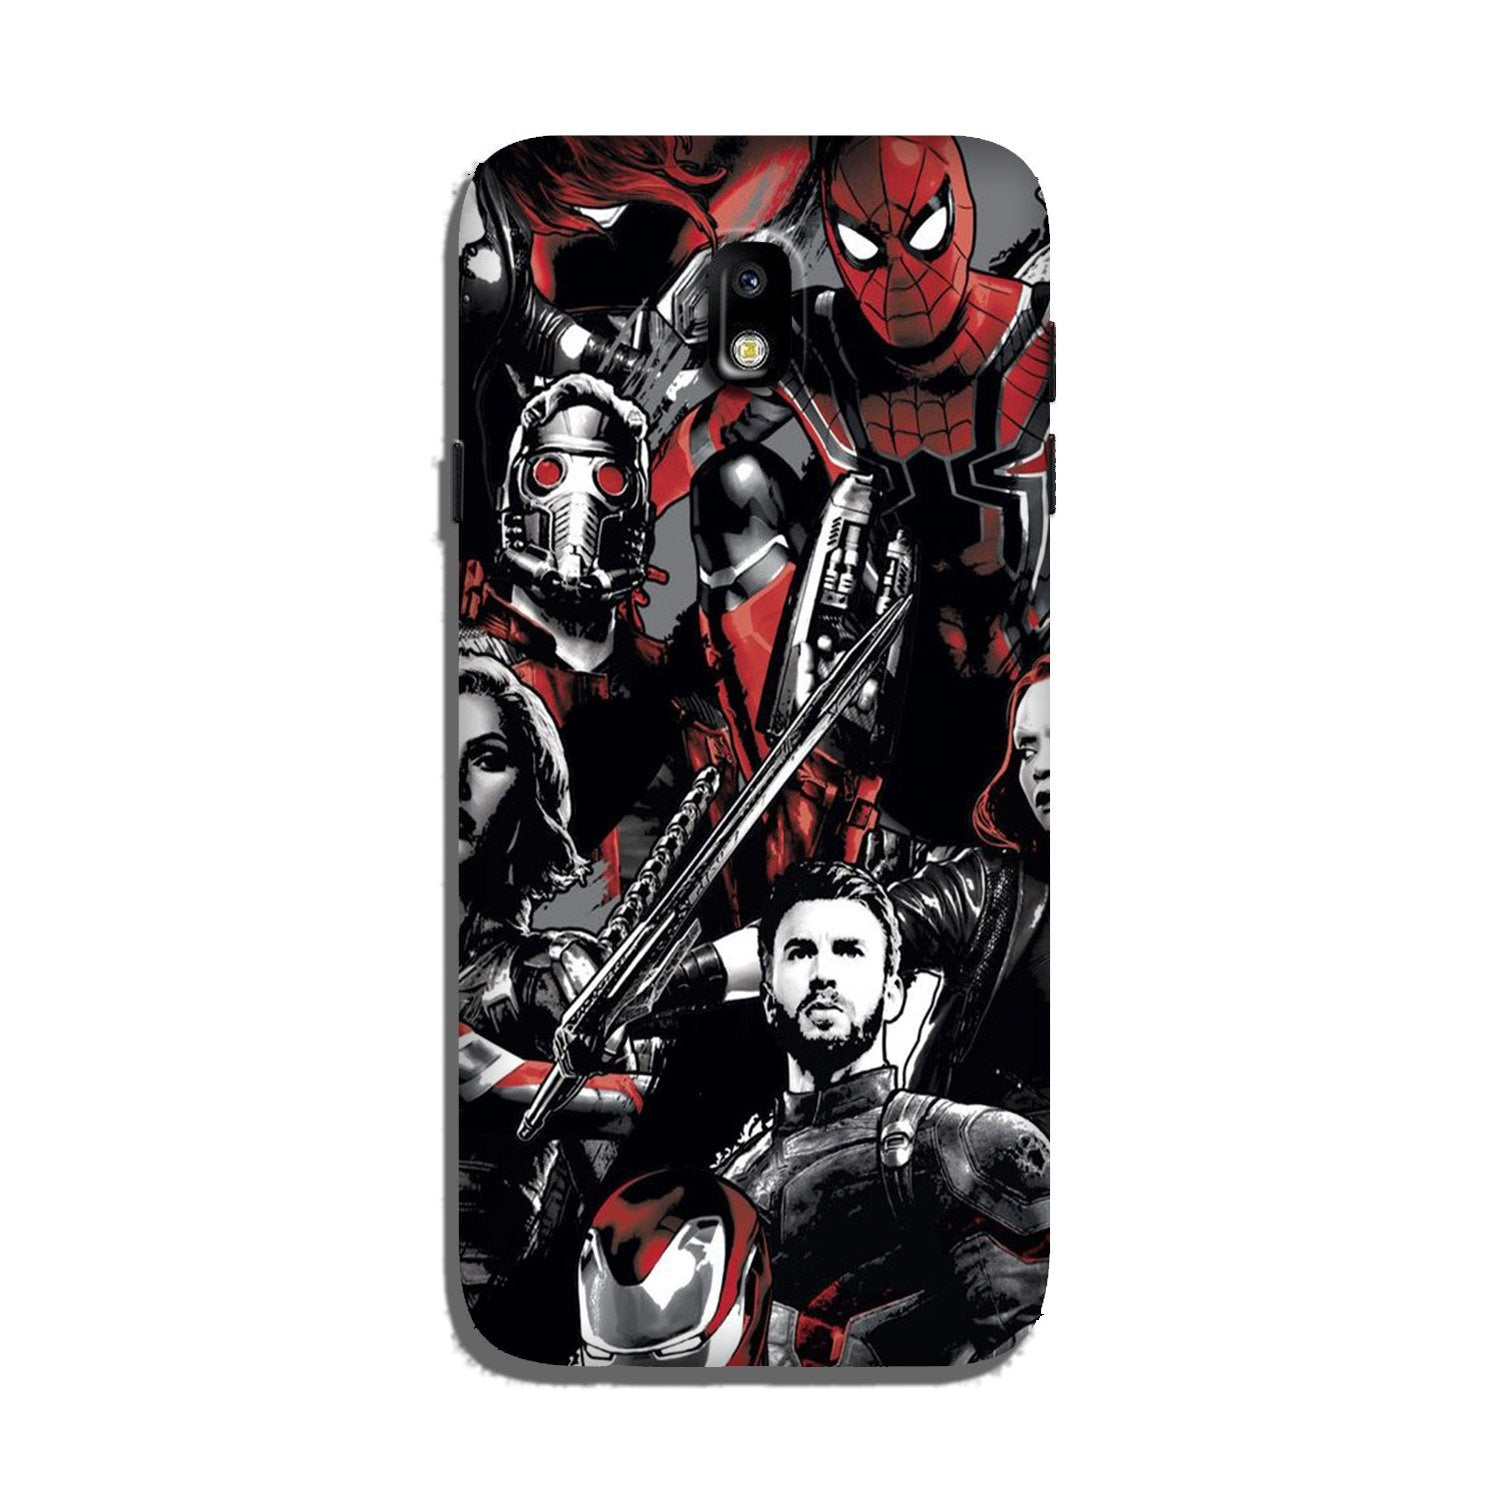 Avengers Case for Galaxy J7 Pro (Design - 190)